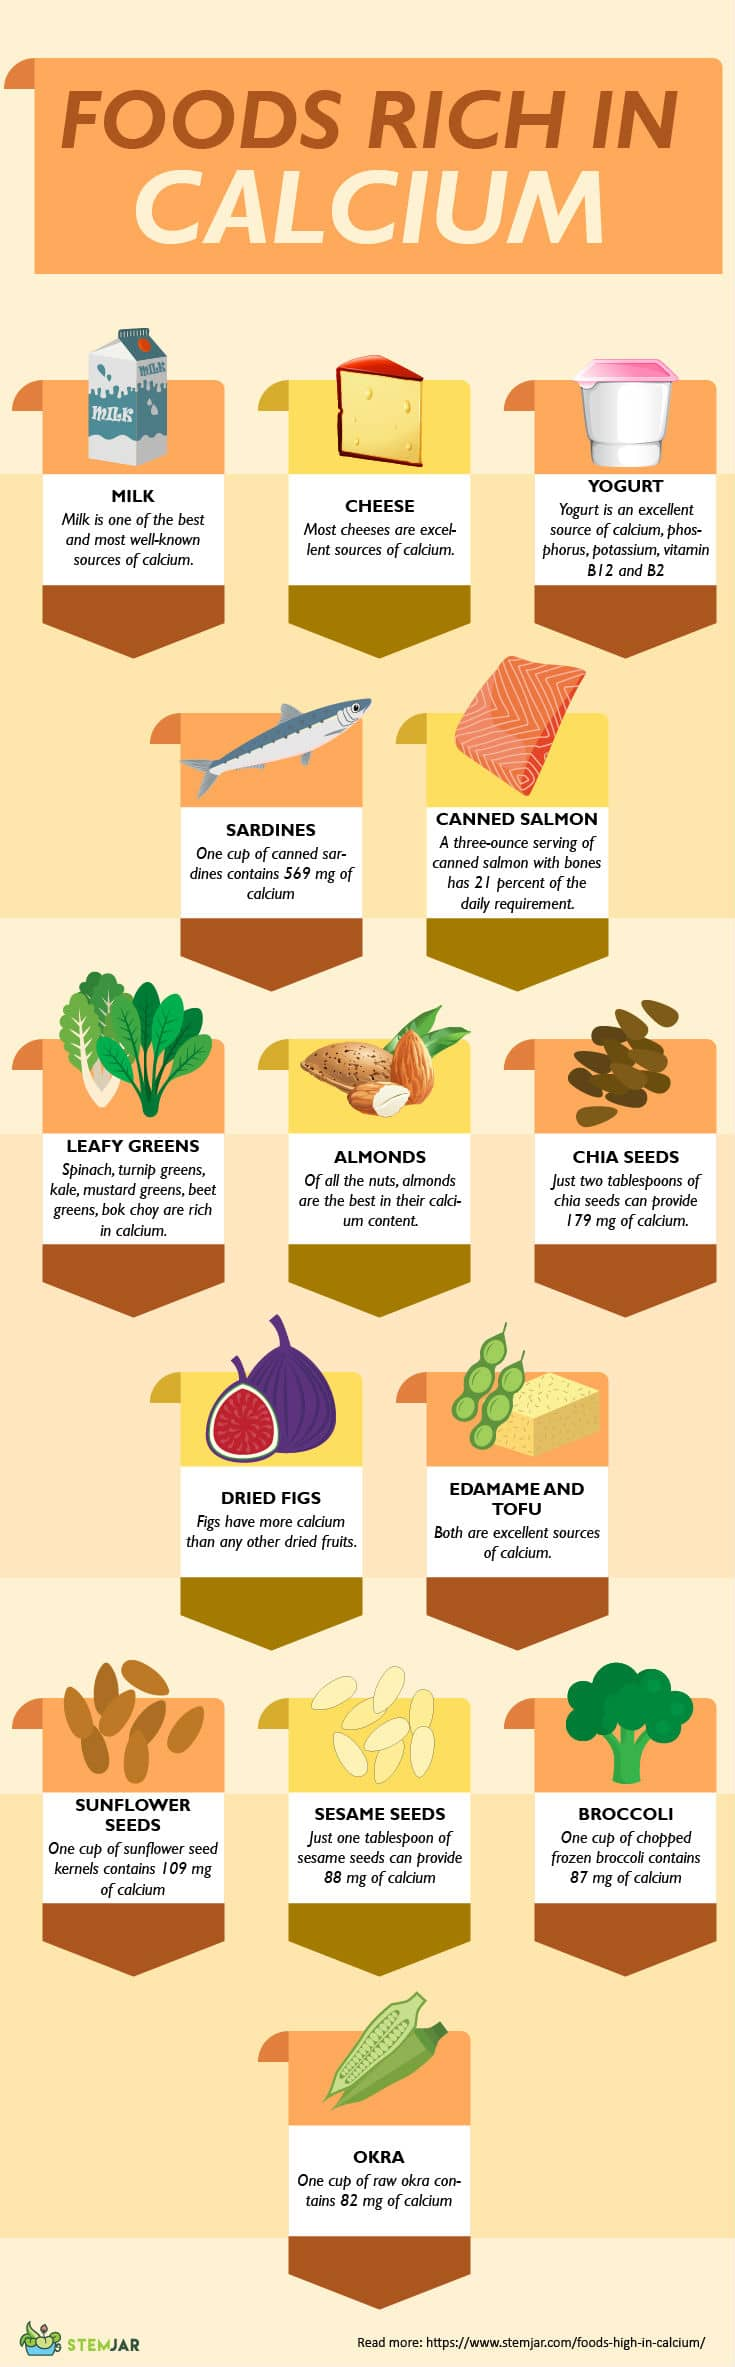 Calcium rich foods infographic